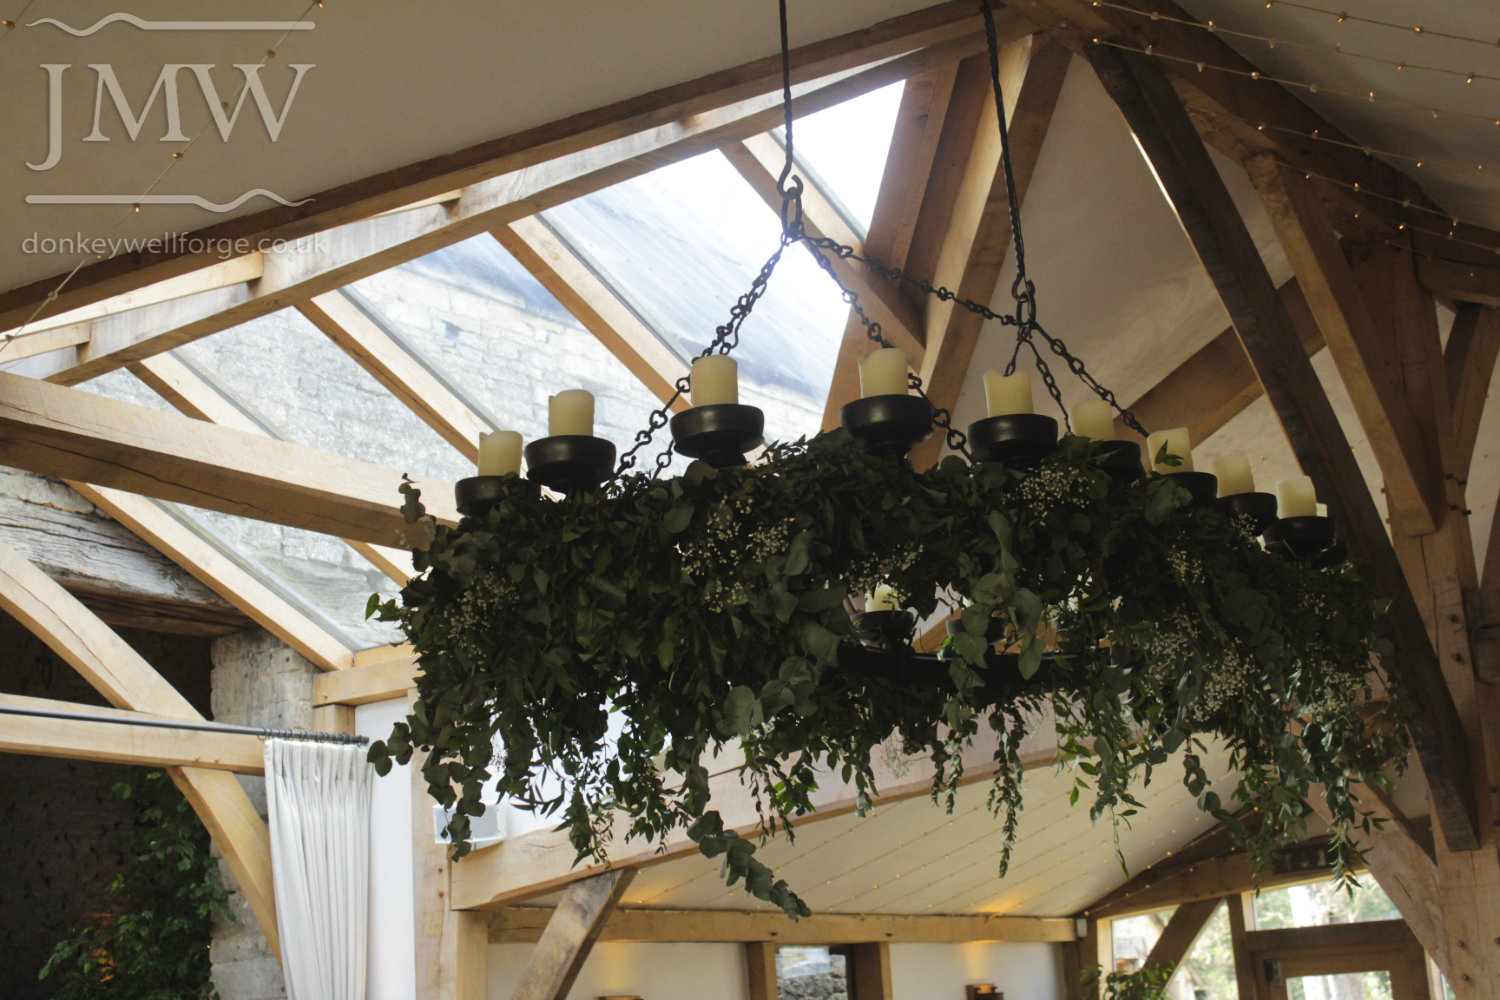 cripps-barn-candelabra-wedding-venue-iron